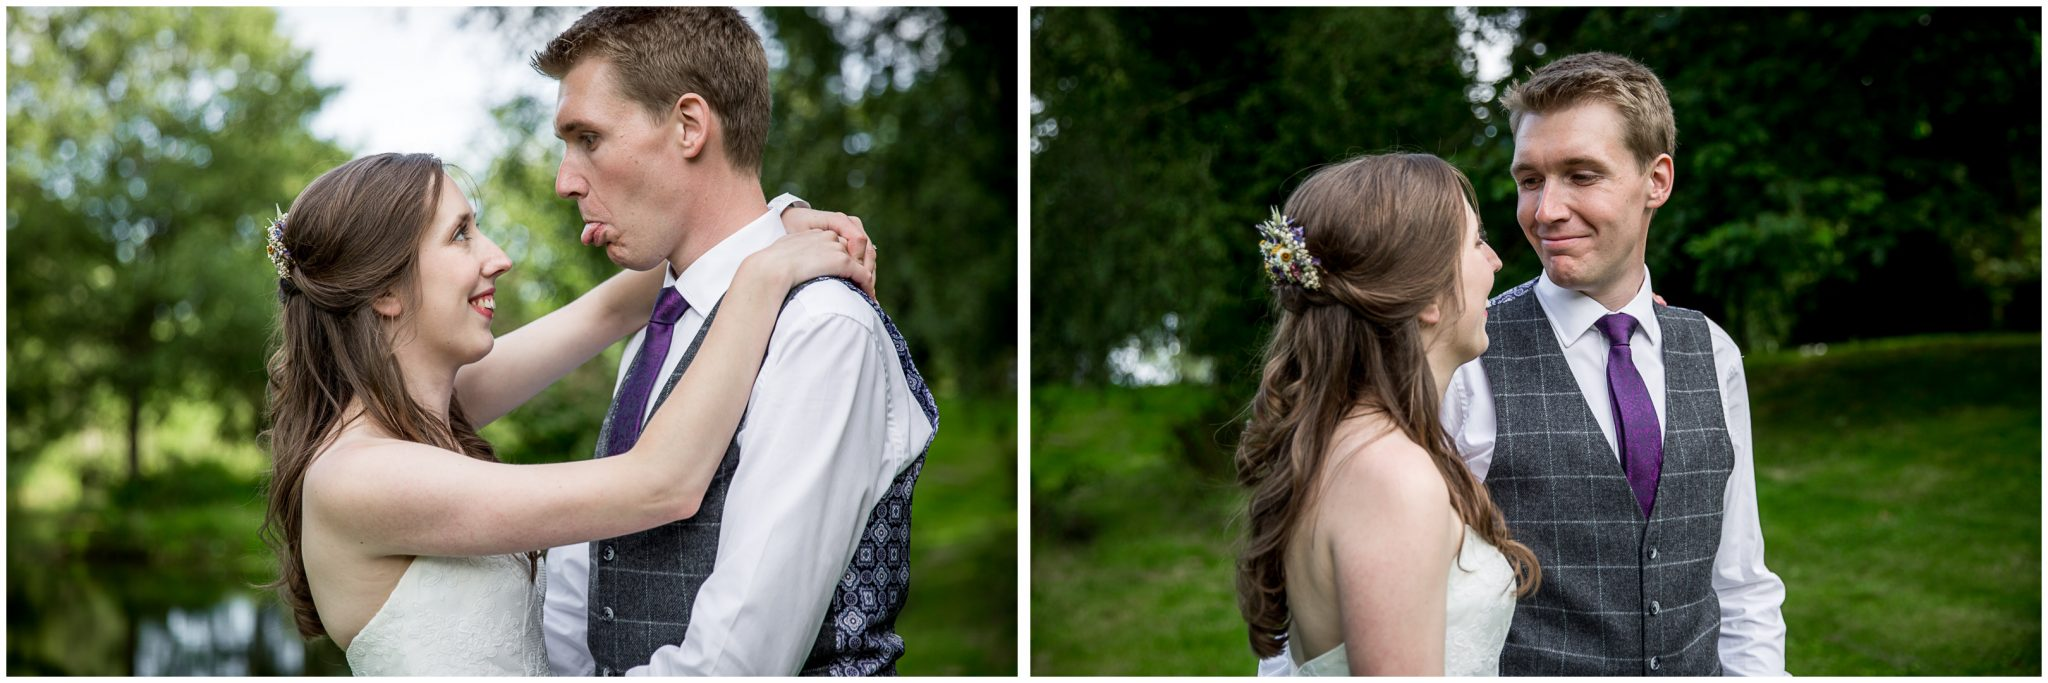 Timsbury Manor Festival Wedding bride and groom portraits by lake